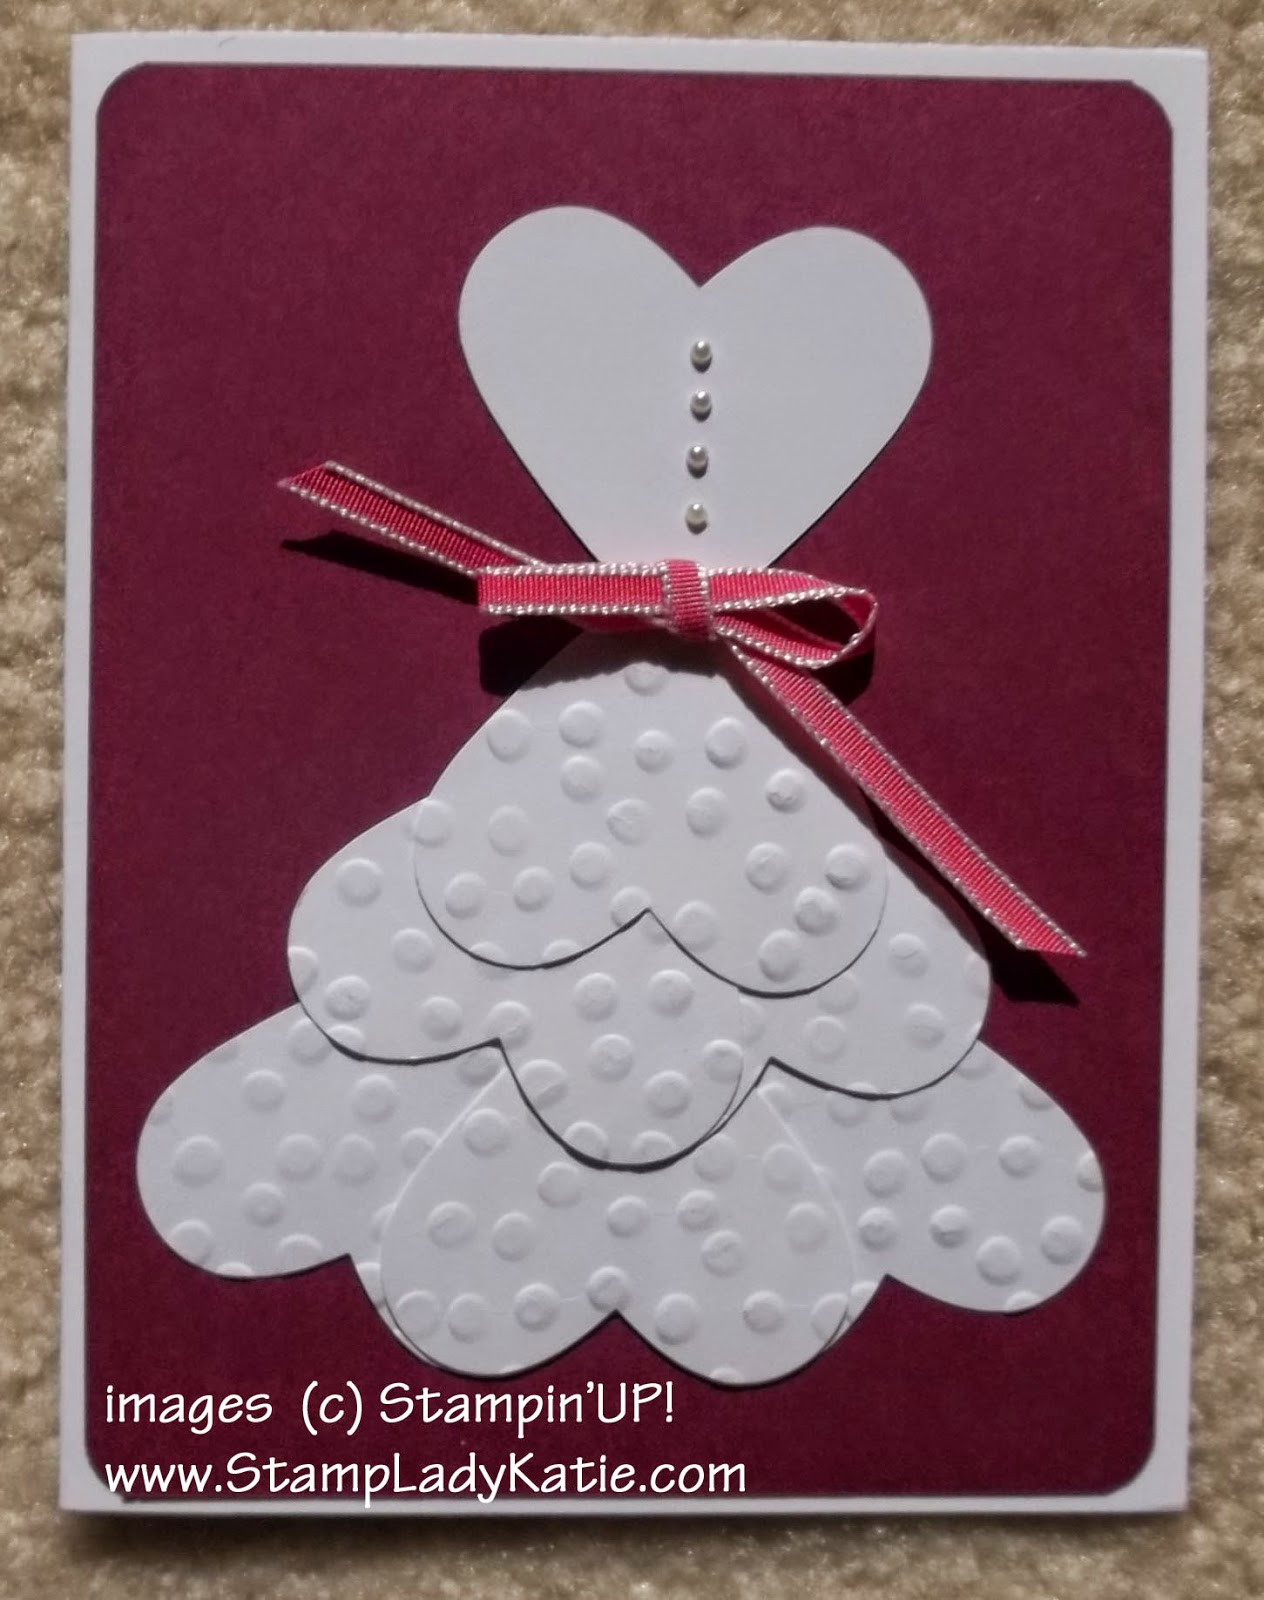 Punch Art made with Stampin'UP!'s Full Heart Punch